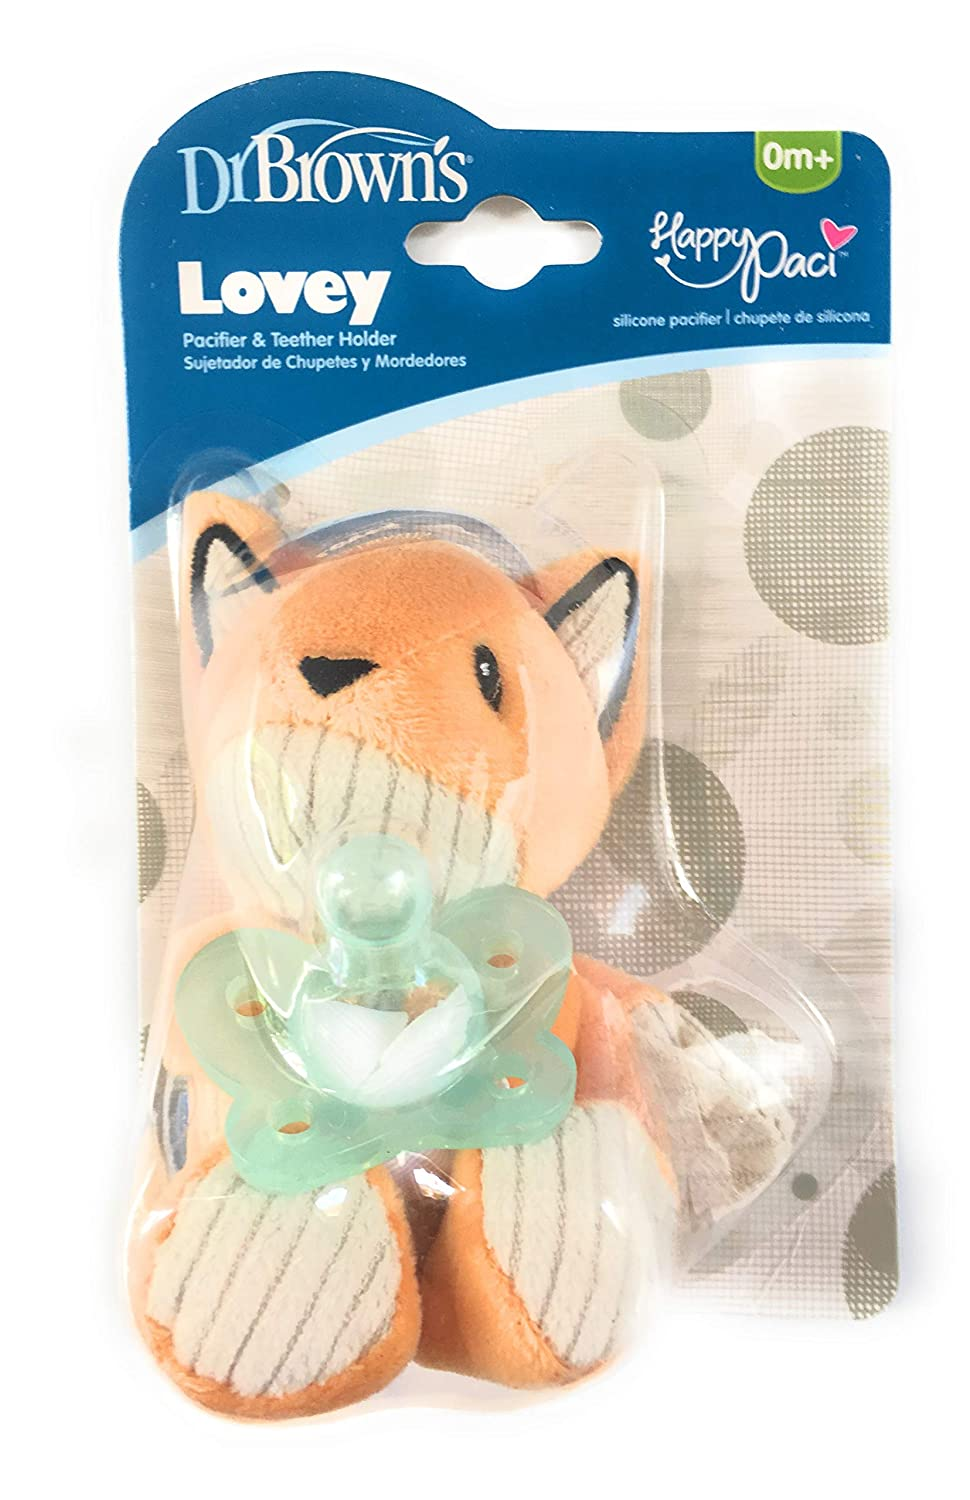 Amazon.com: DR. BROWNS Lovey PACIFIER & TEETHER HOLDER & COTTON ...